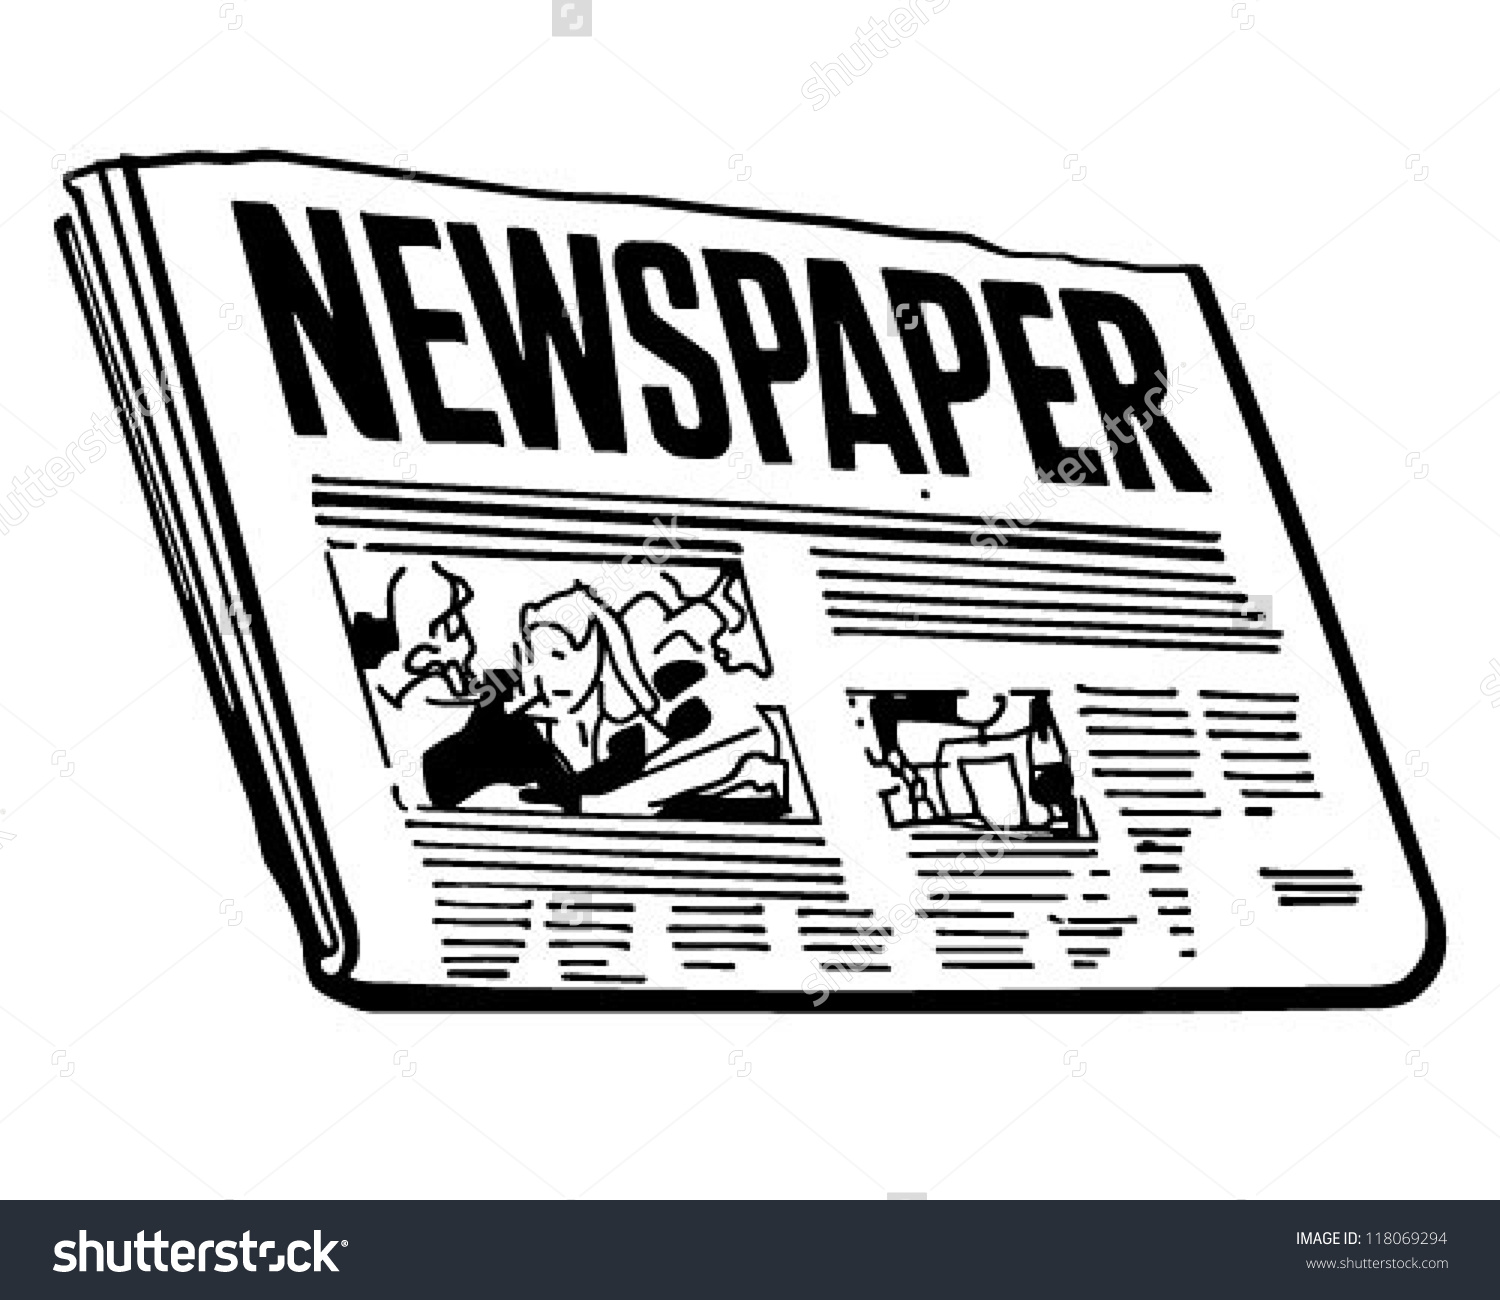 Clipart Of Newspaper Free Clip Art Image-Clipart Of Newspaper Free Clip Art Images FreeClipart Pw-3